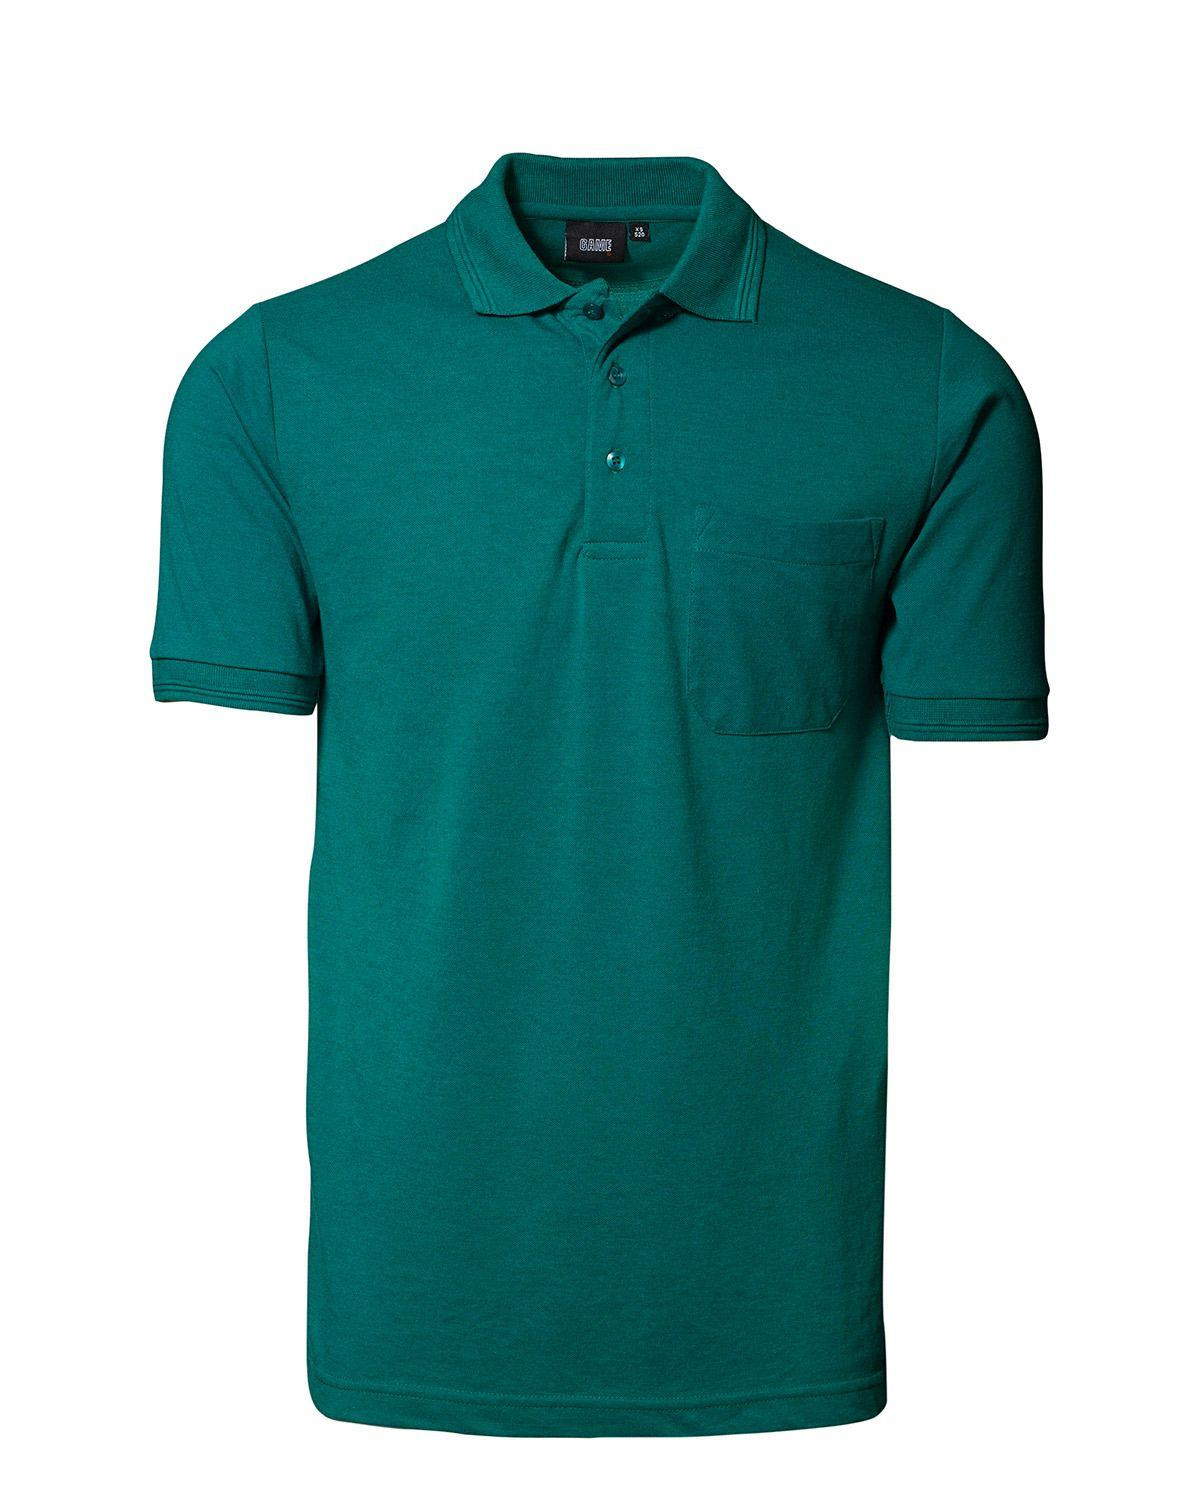 Image of   ID Klassisk Polo m. Lomme (Grøn, 2XL)